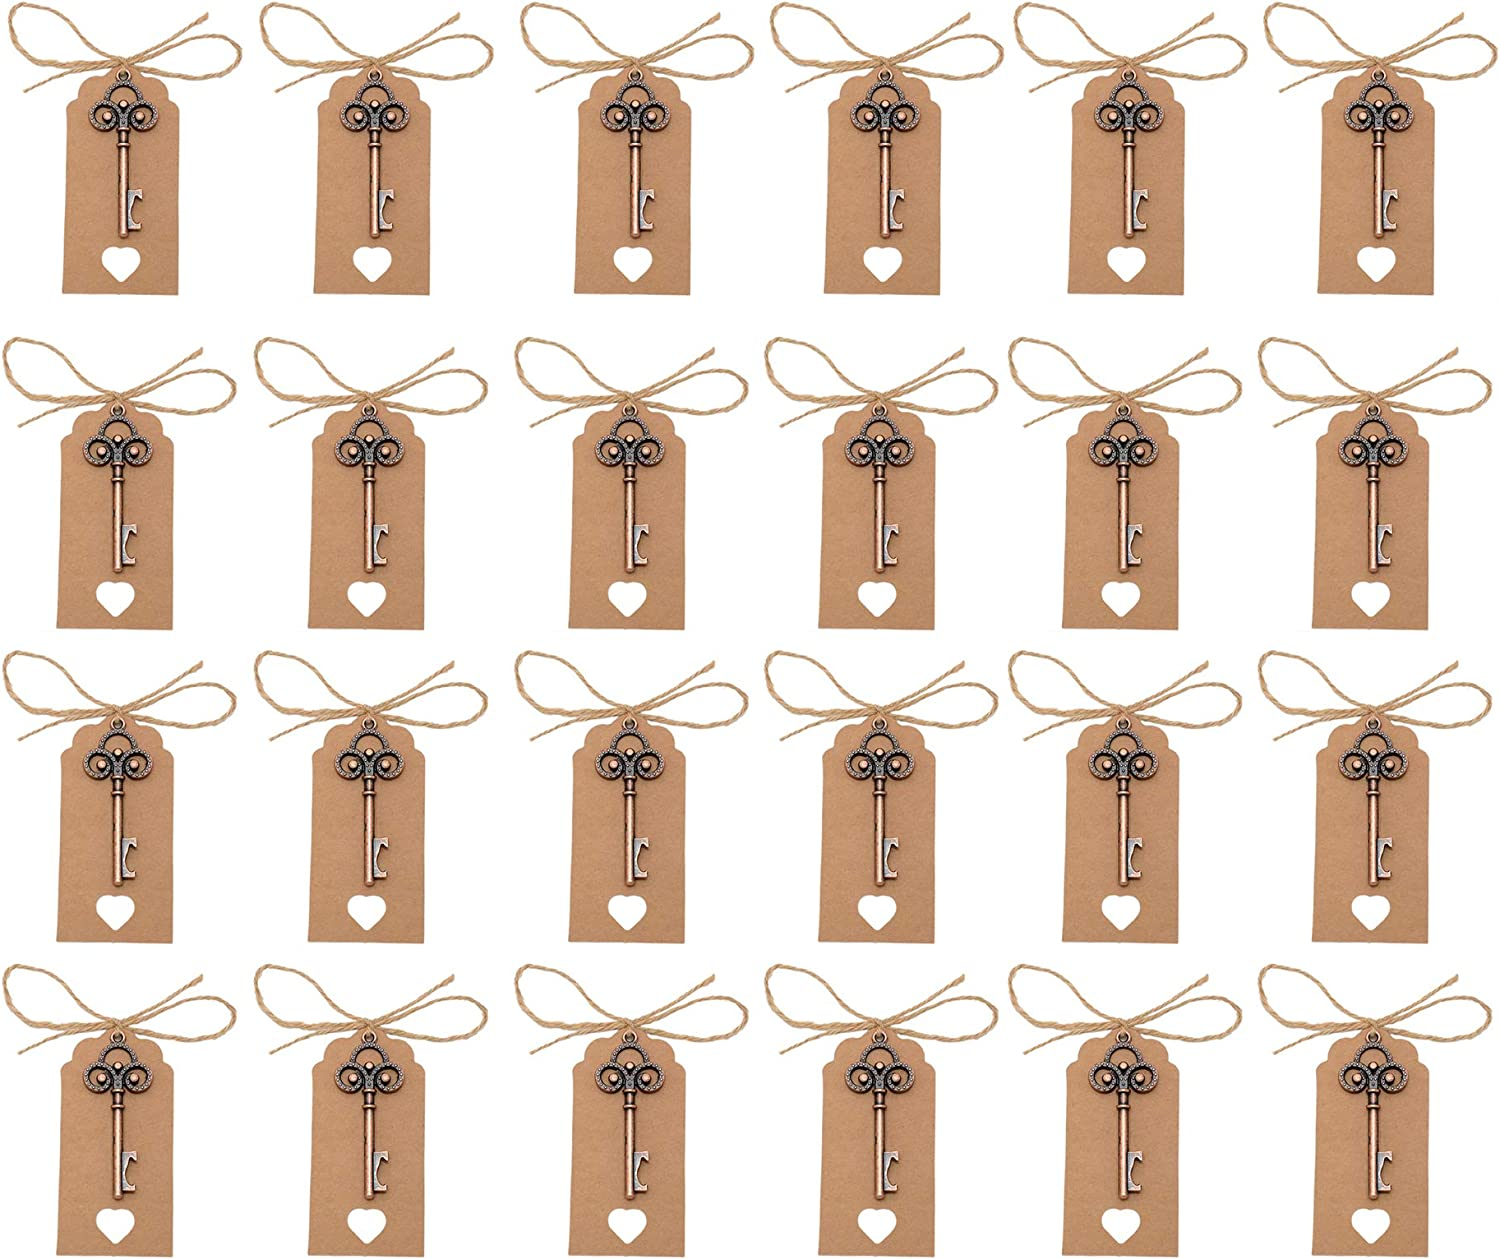 Yansanido Pack of 50 Skeleton Key Bottle Opener with Escort Tag Card and Twine for Wedding Favors for Guests Party Favors (style 1)